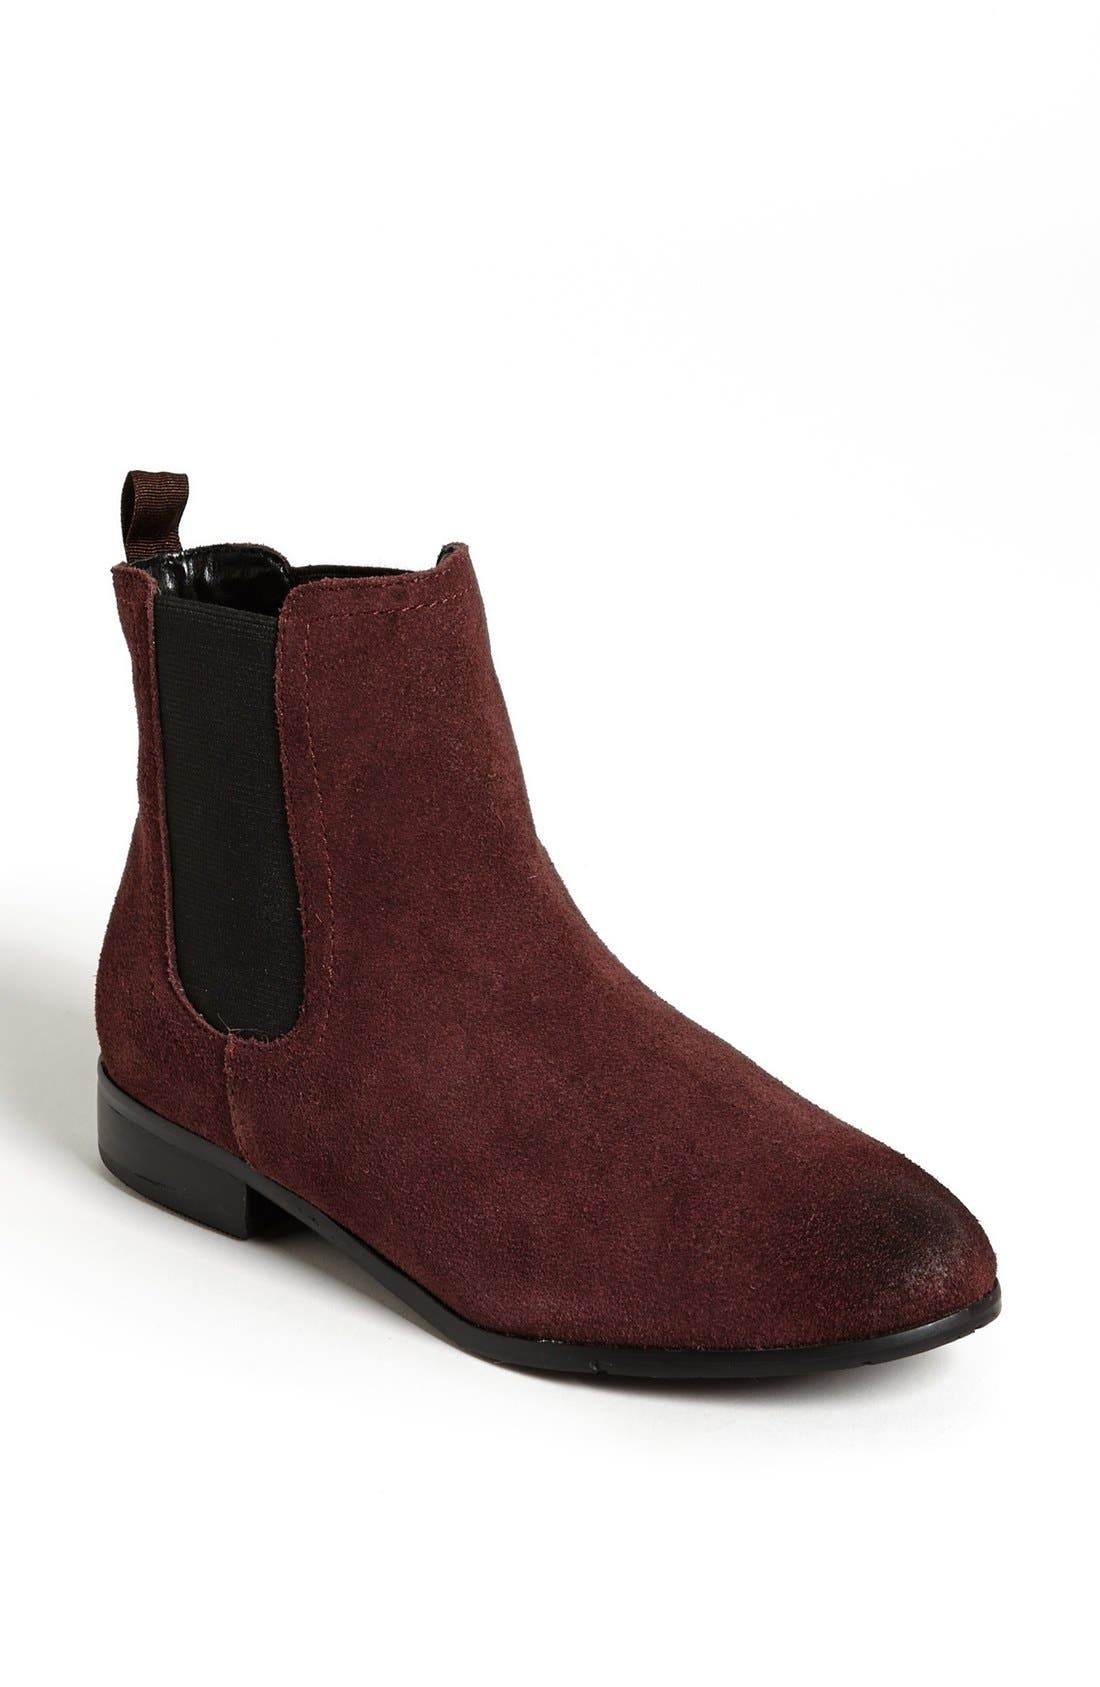 Main Image - DV by Dolce Vita 'Coraline' Boot